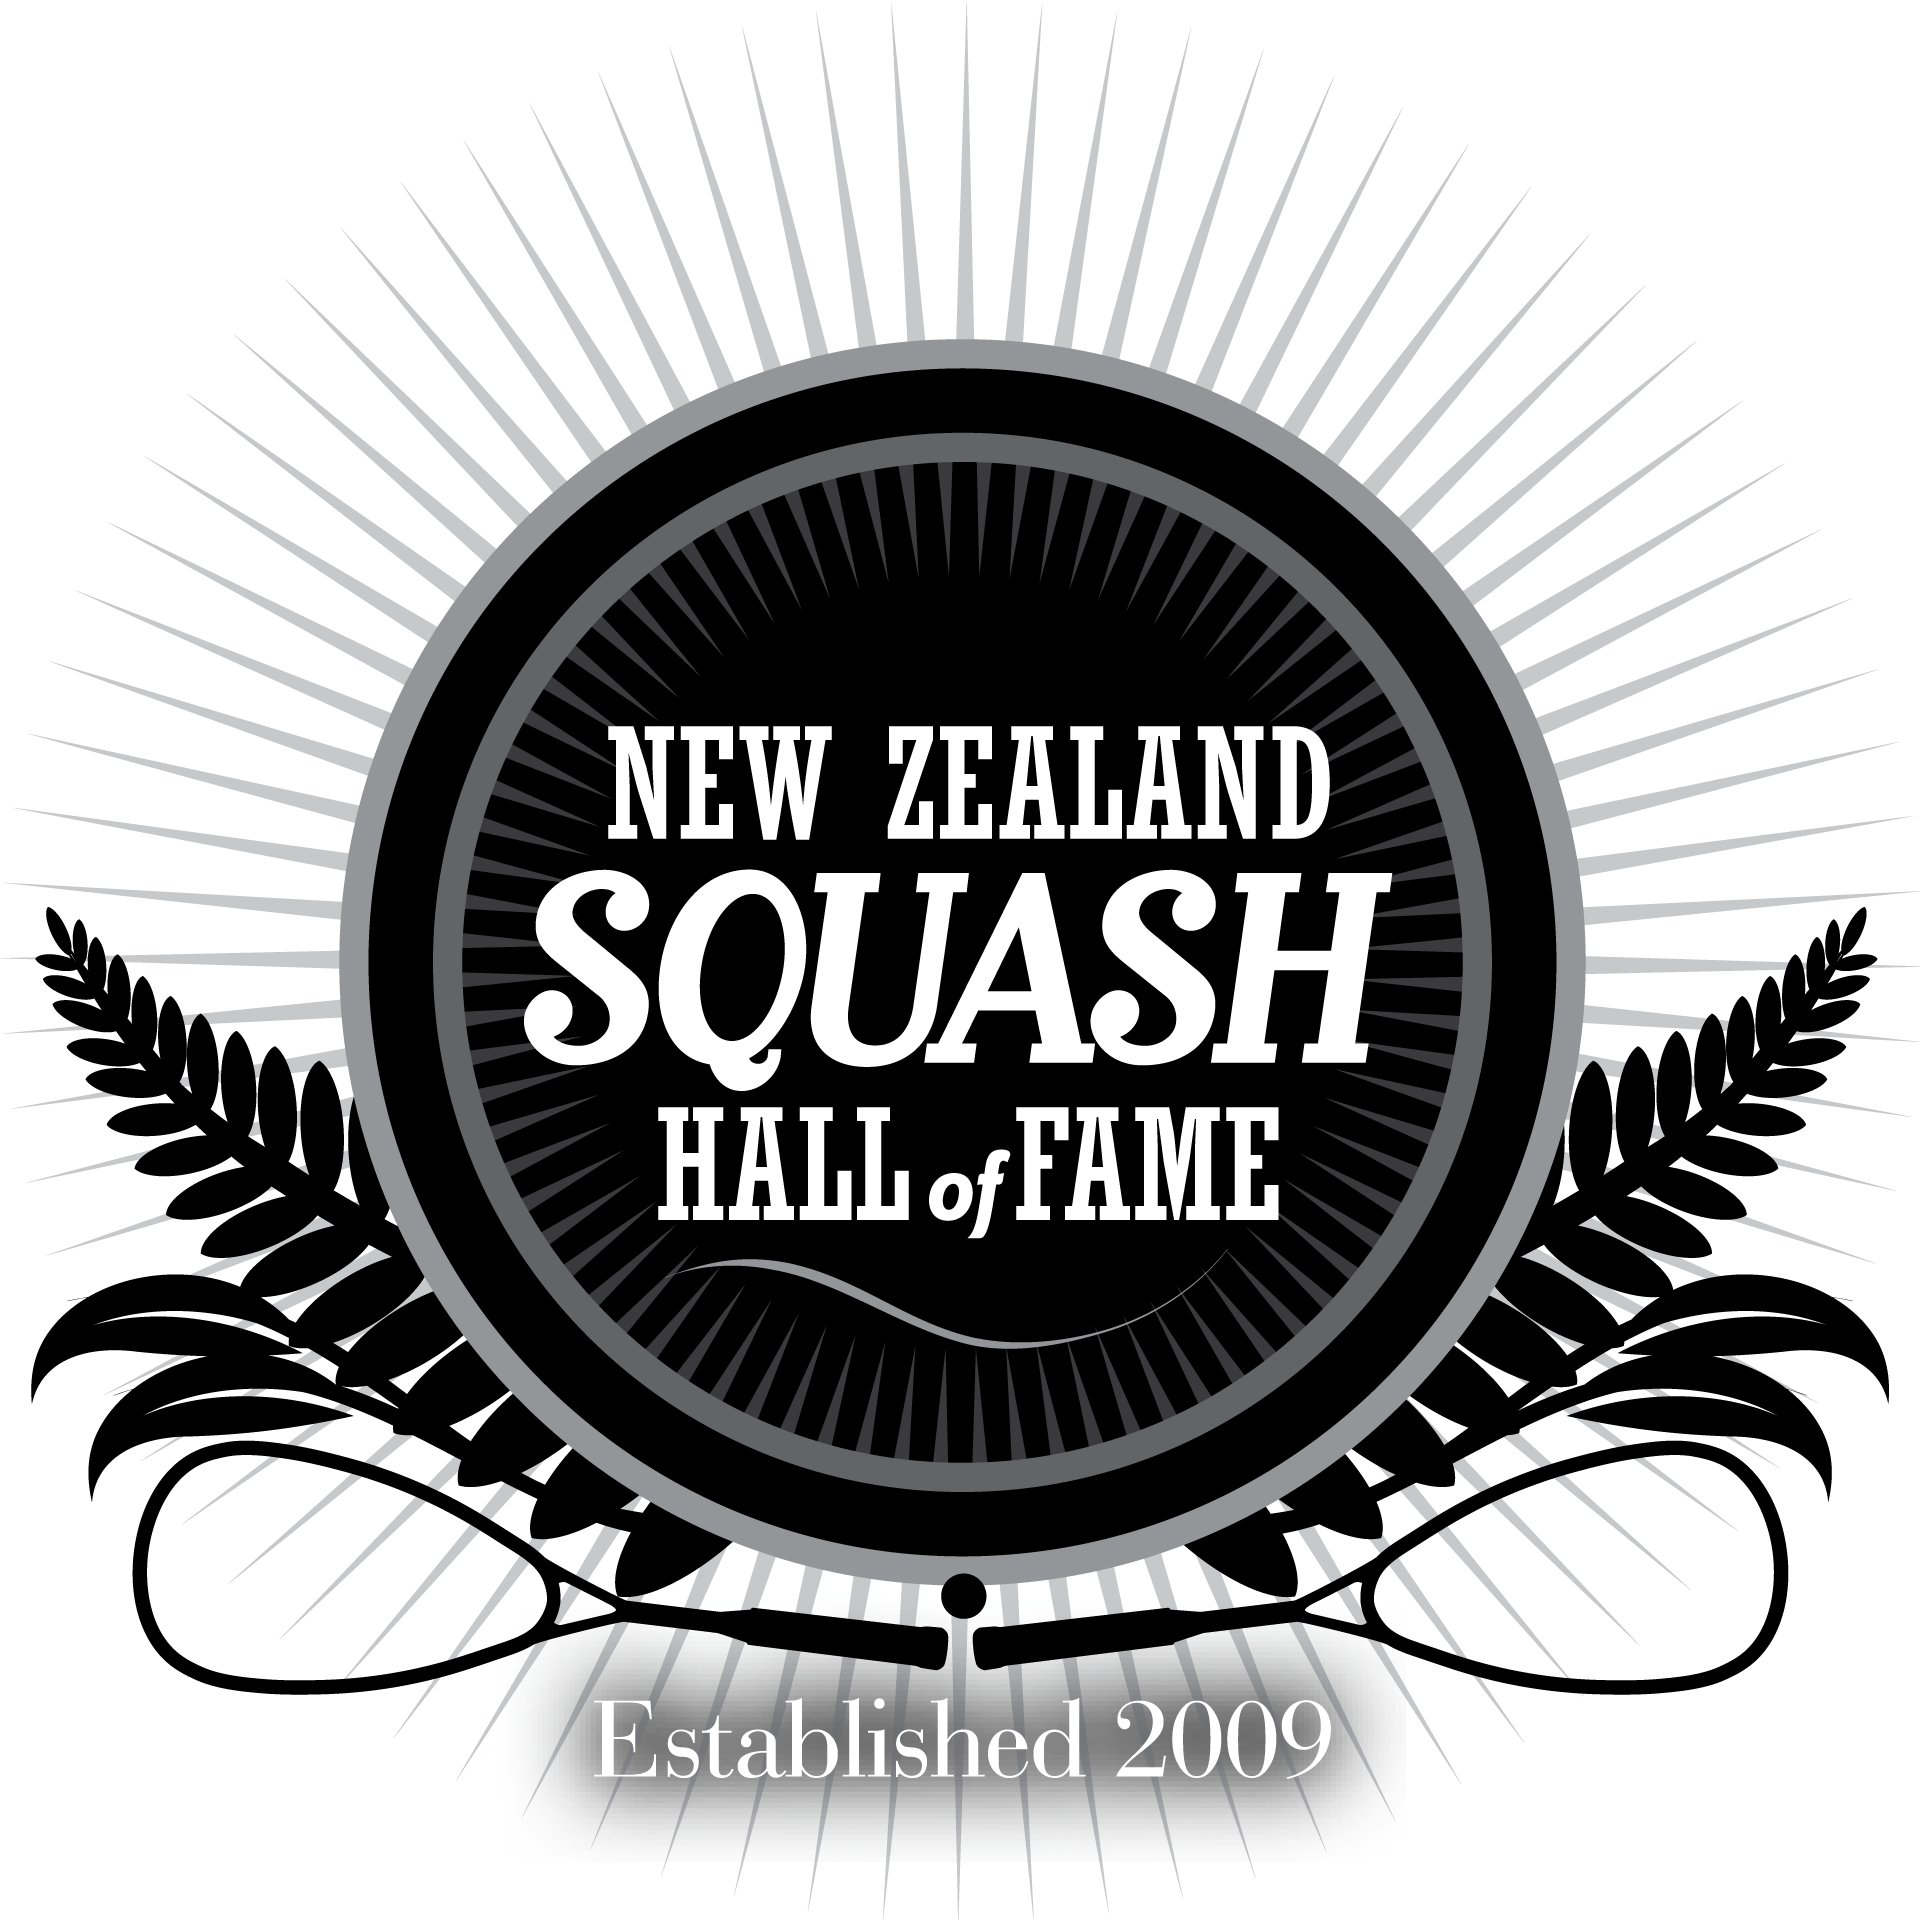 New Zealand Squash Hall of Fame